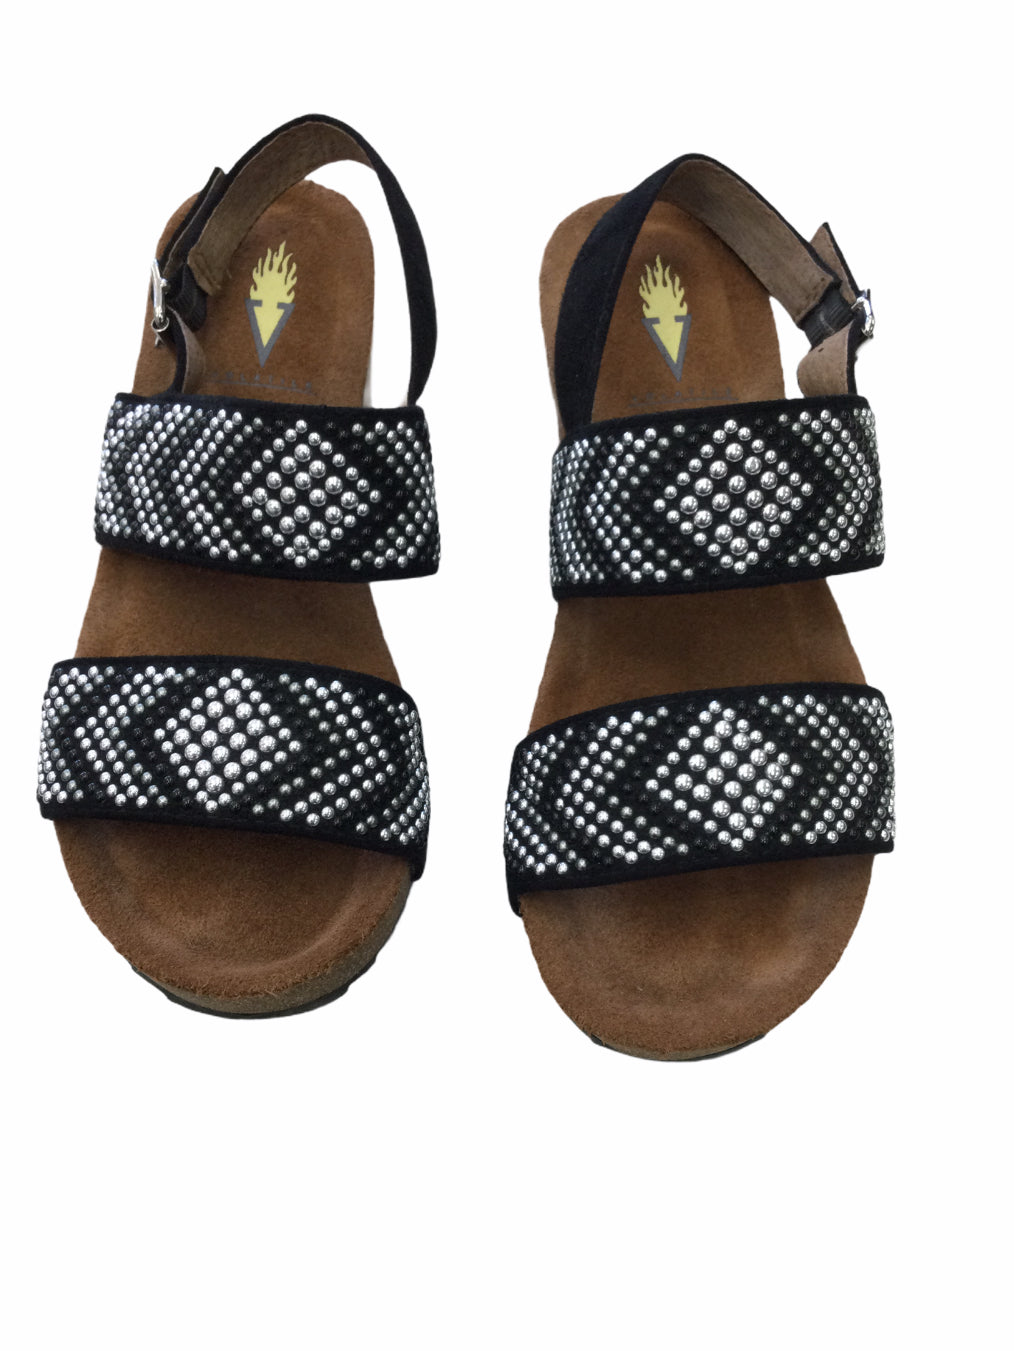 Primary Photo - BRAND: VOLATILE <BR>STYLE: SANDALS LOW <BR>COLOR: BLACK <BR>SIZE: 6 <BR>SKU: 155-15599-243653